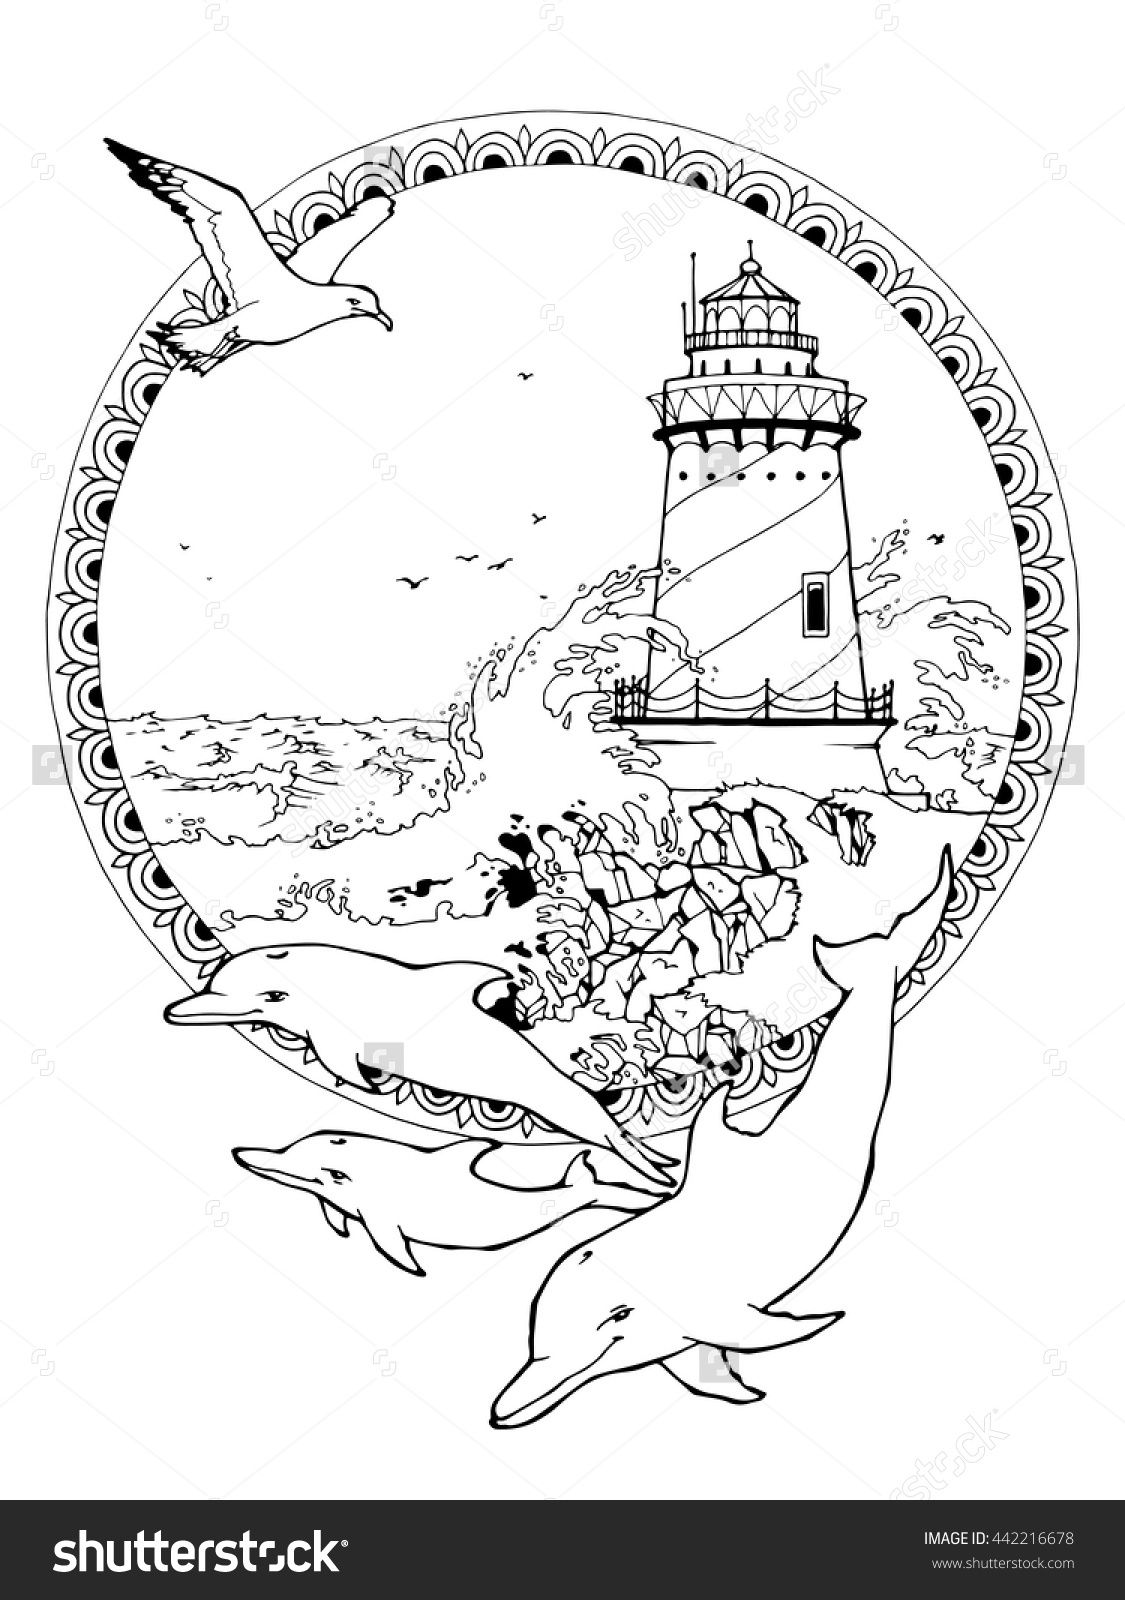 Image Result For Lighthouse Coloring Pages Coloring Pages Lighthouse Drawing Lighthouse